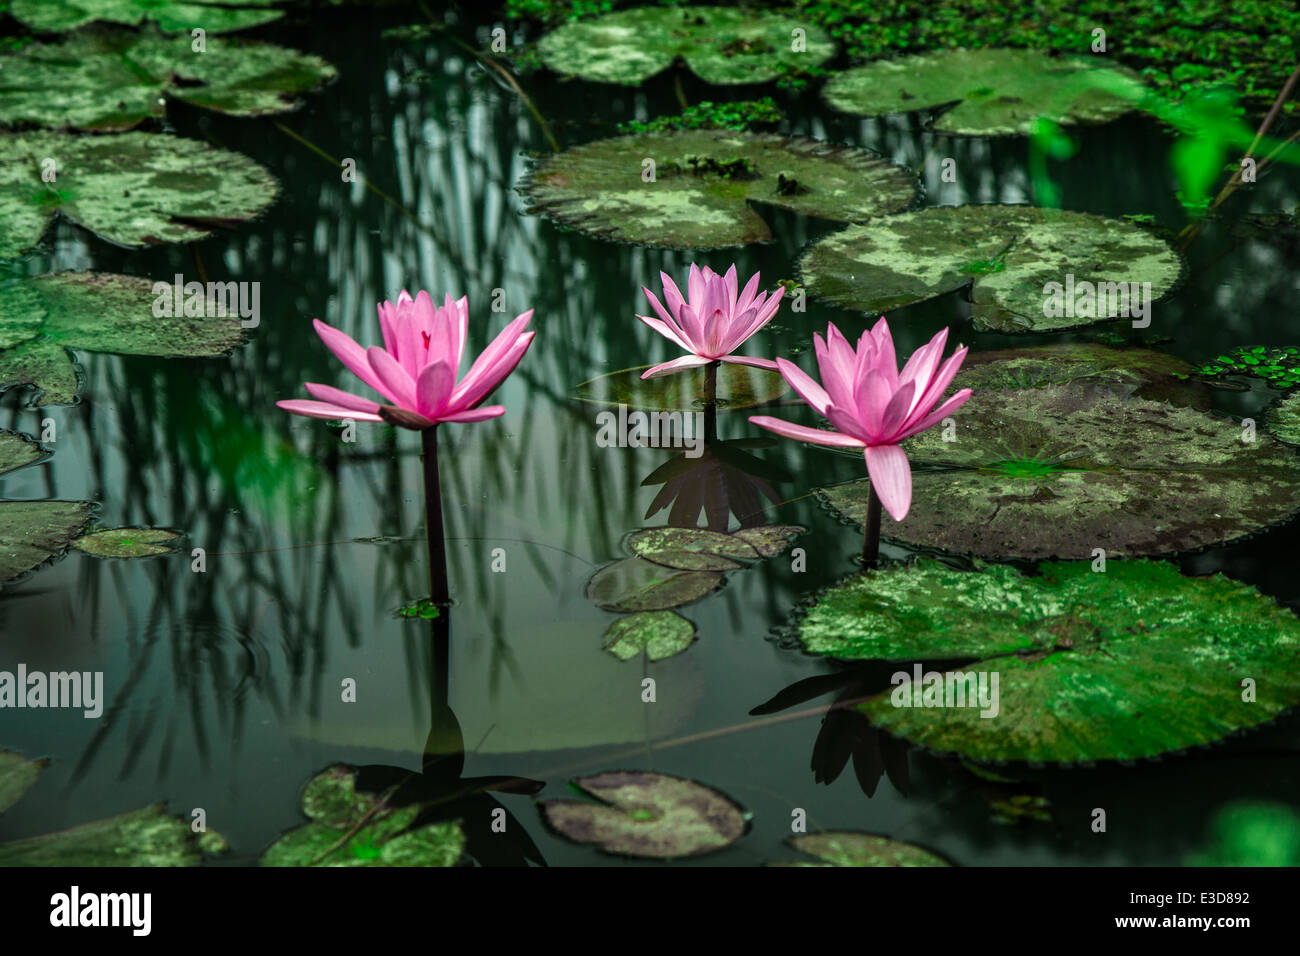 Three Flowers Of Lotus Growing In The Lake Stock Photo 70977342 Alamy